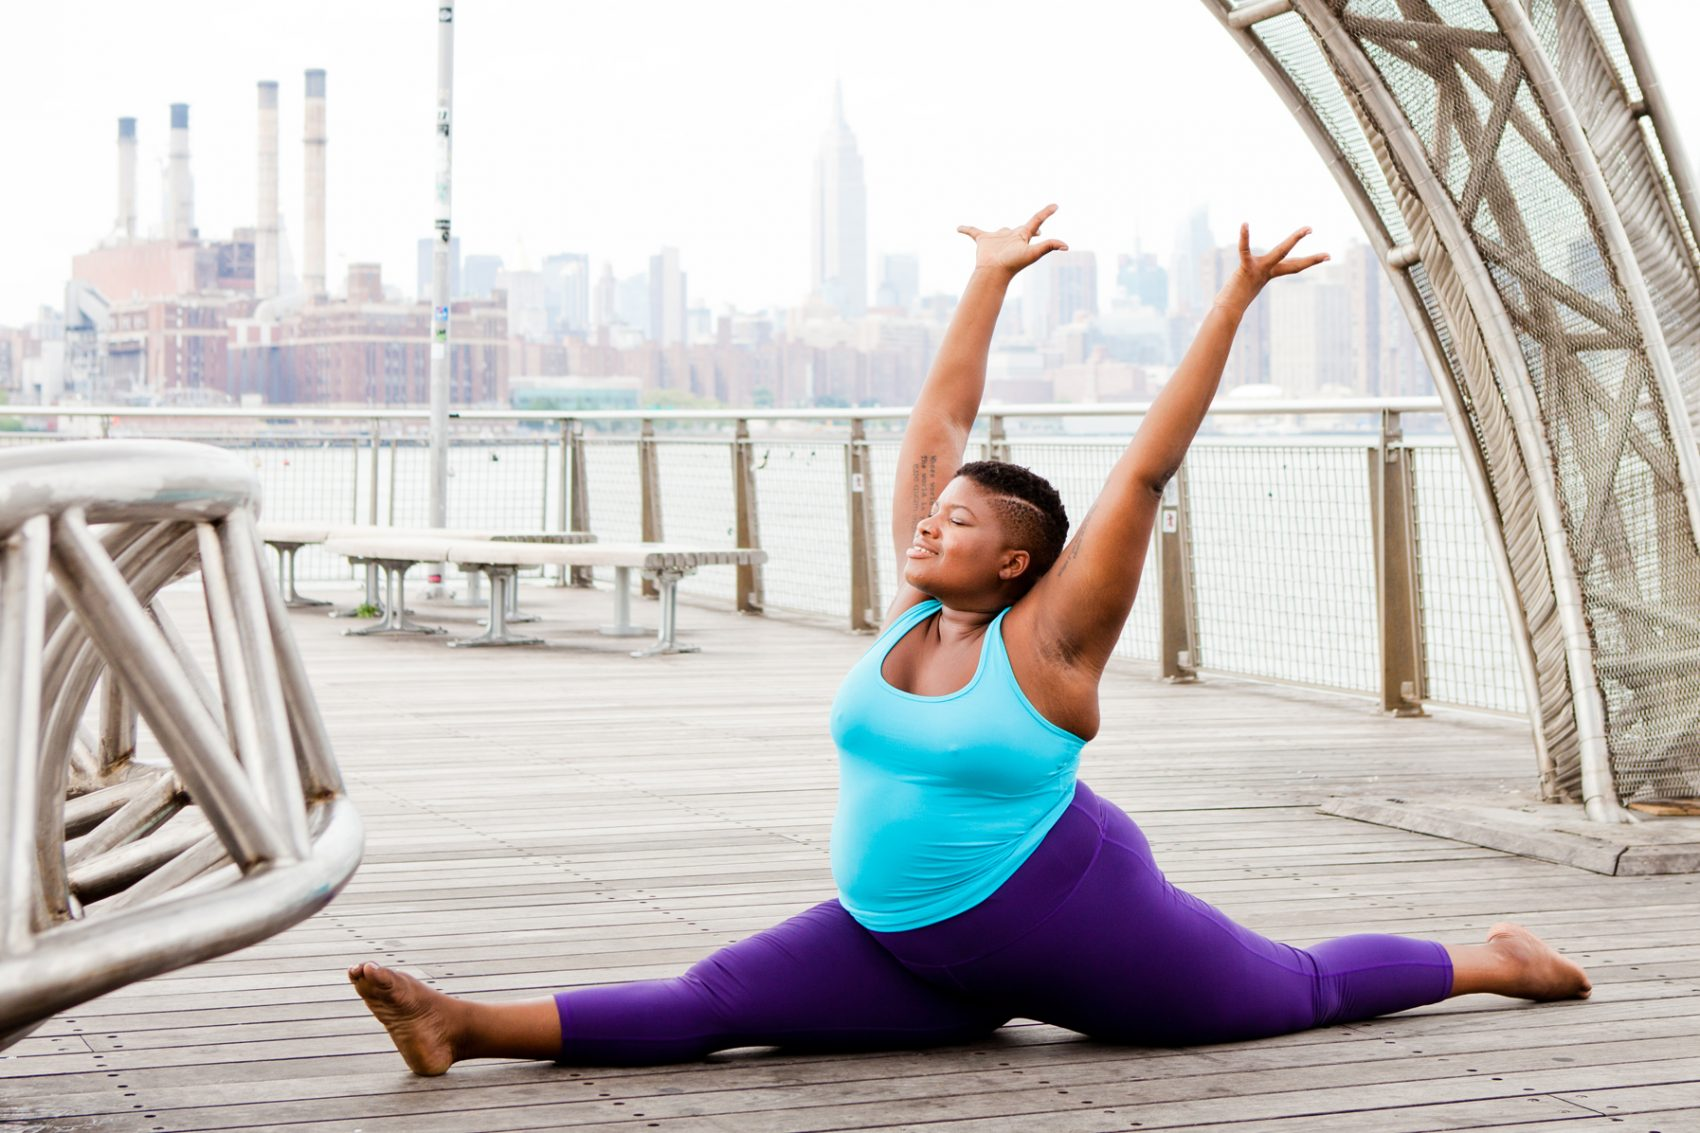 'Every Body Yoga' Encourages Self-Love And Everyone To Get On The Mat | Here & Now